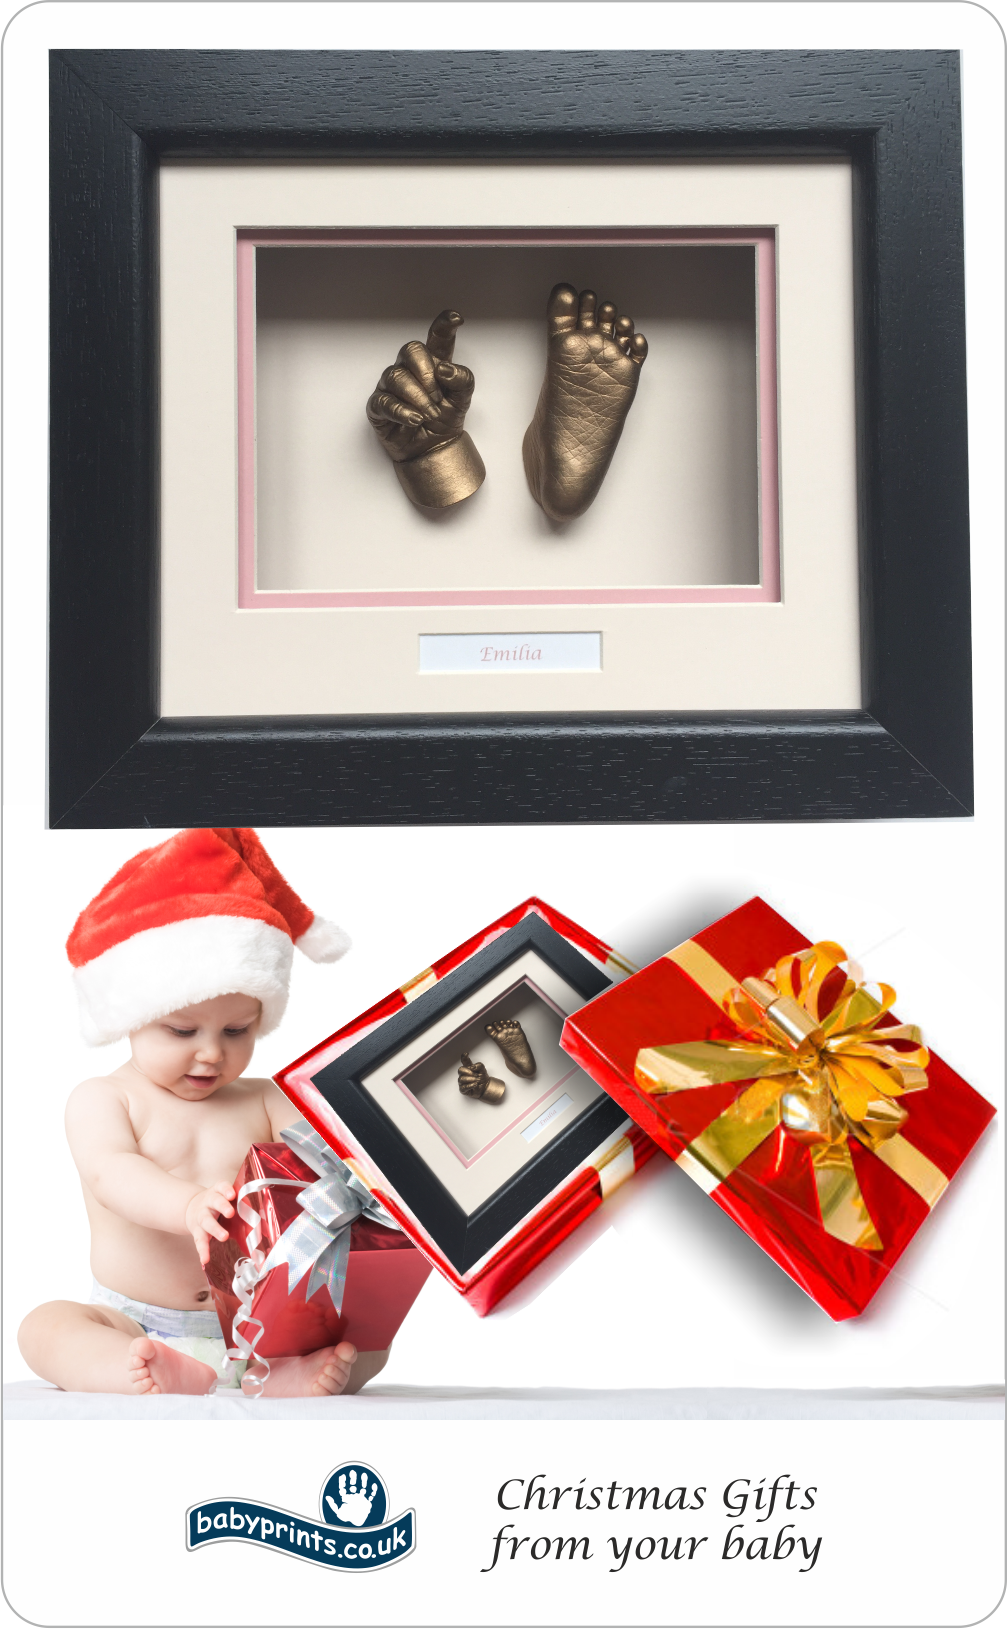 Christmas Gift from baby - Babyprints